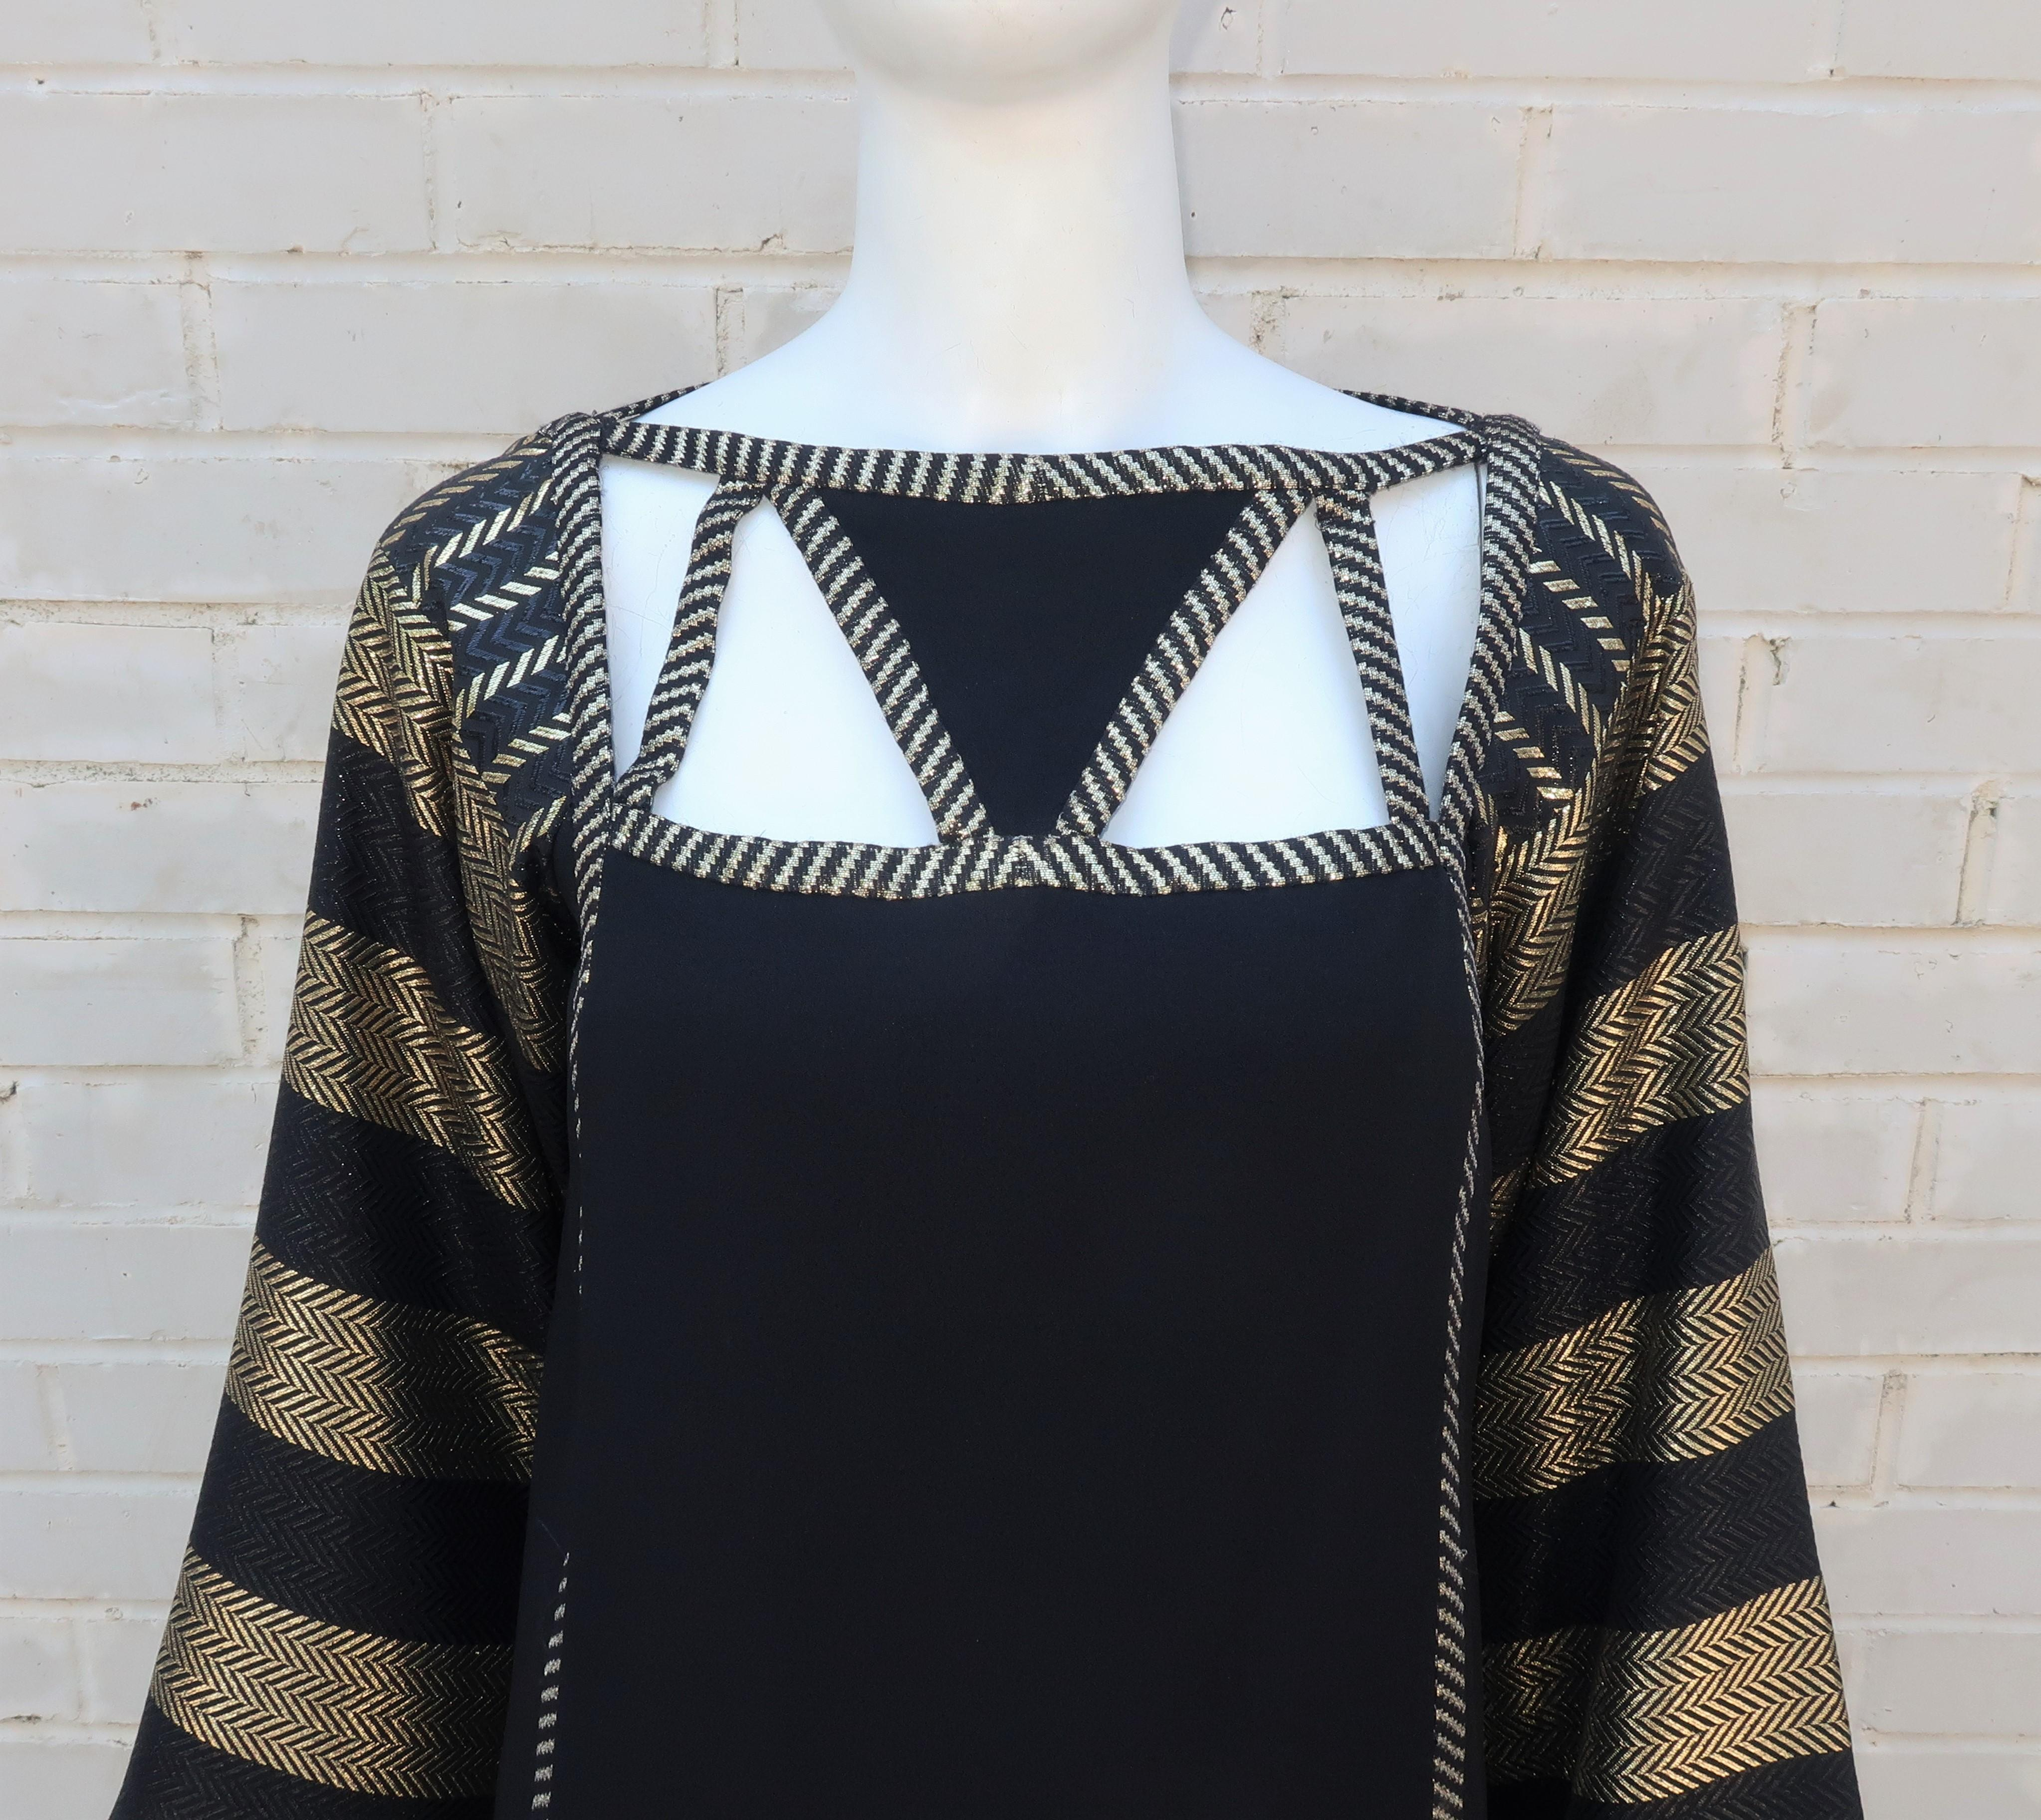 a75ef729509 1970's Bob Mackie Black and Gold Lamé Art Deco Style Dress Ensemble For  Sale at 1stdibs